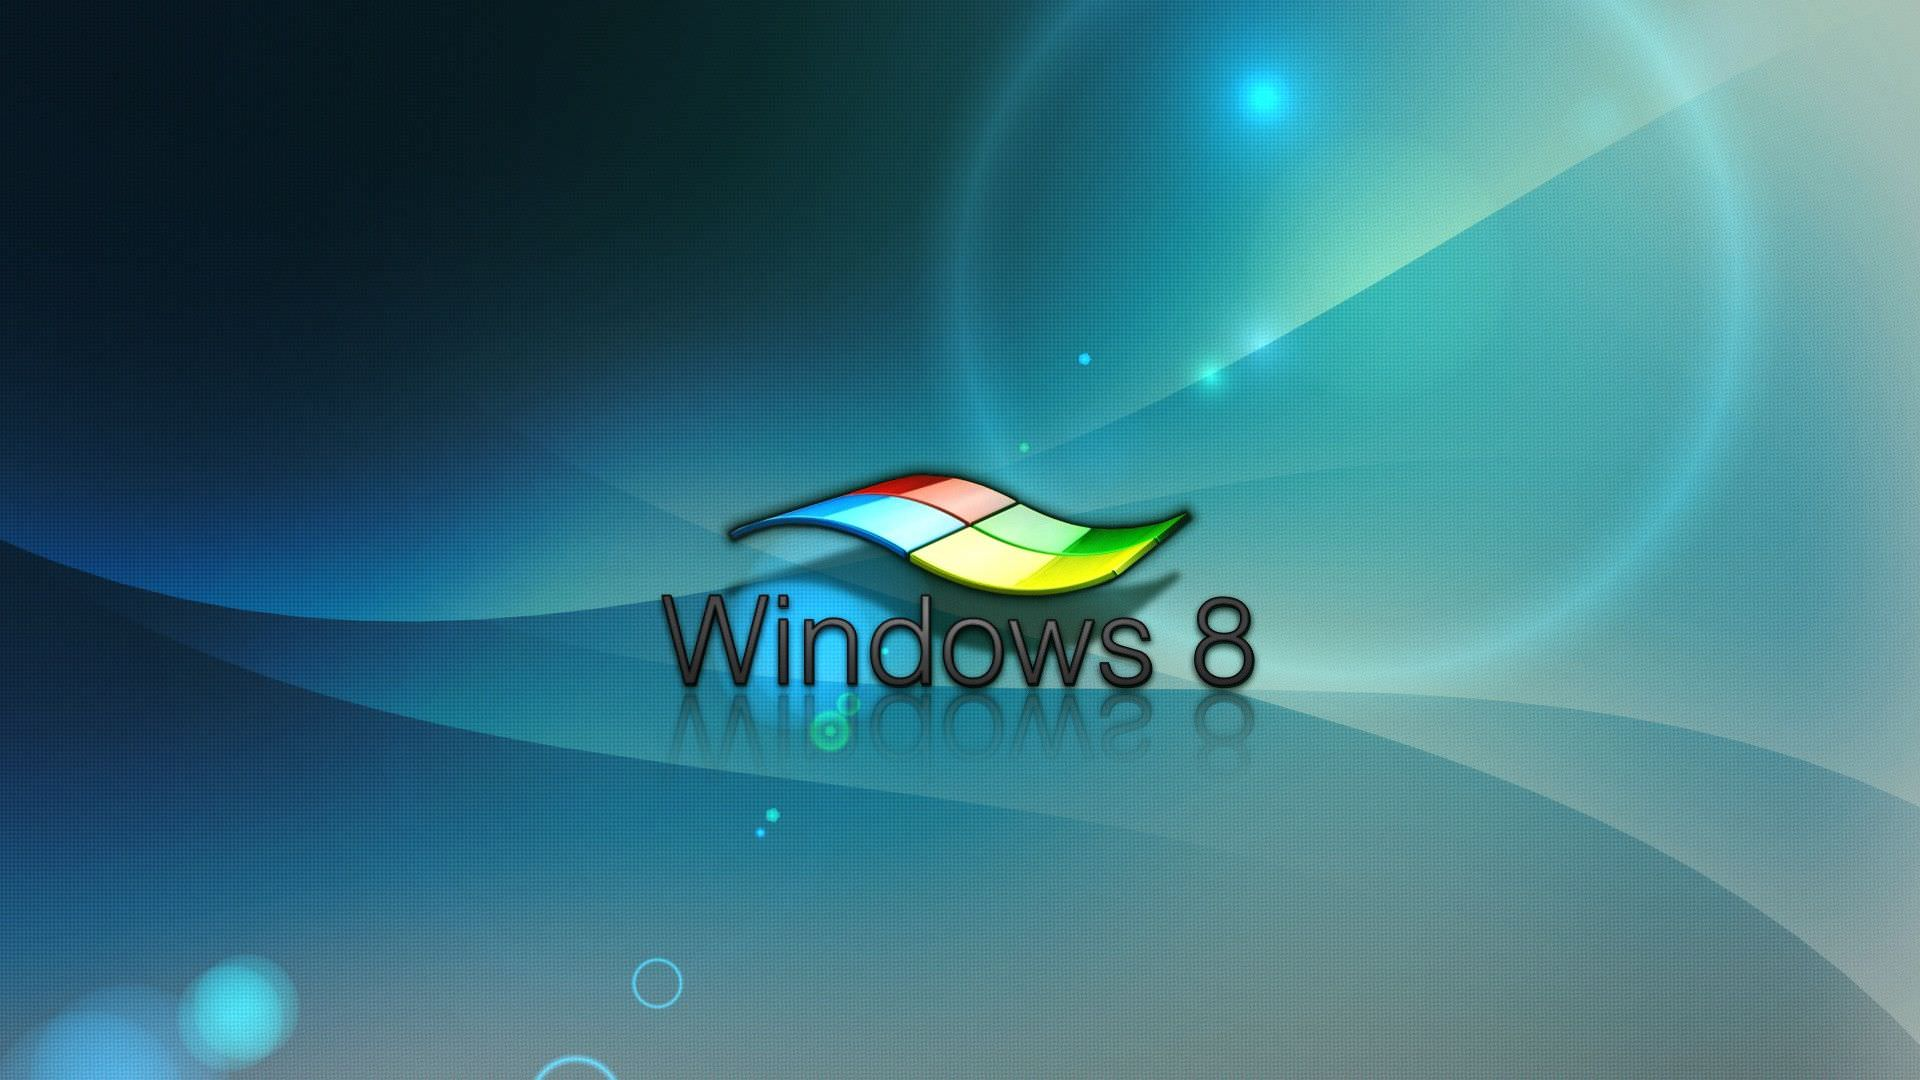 30+ 3D Windows 8 Wallpapers, Images